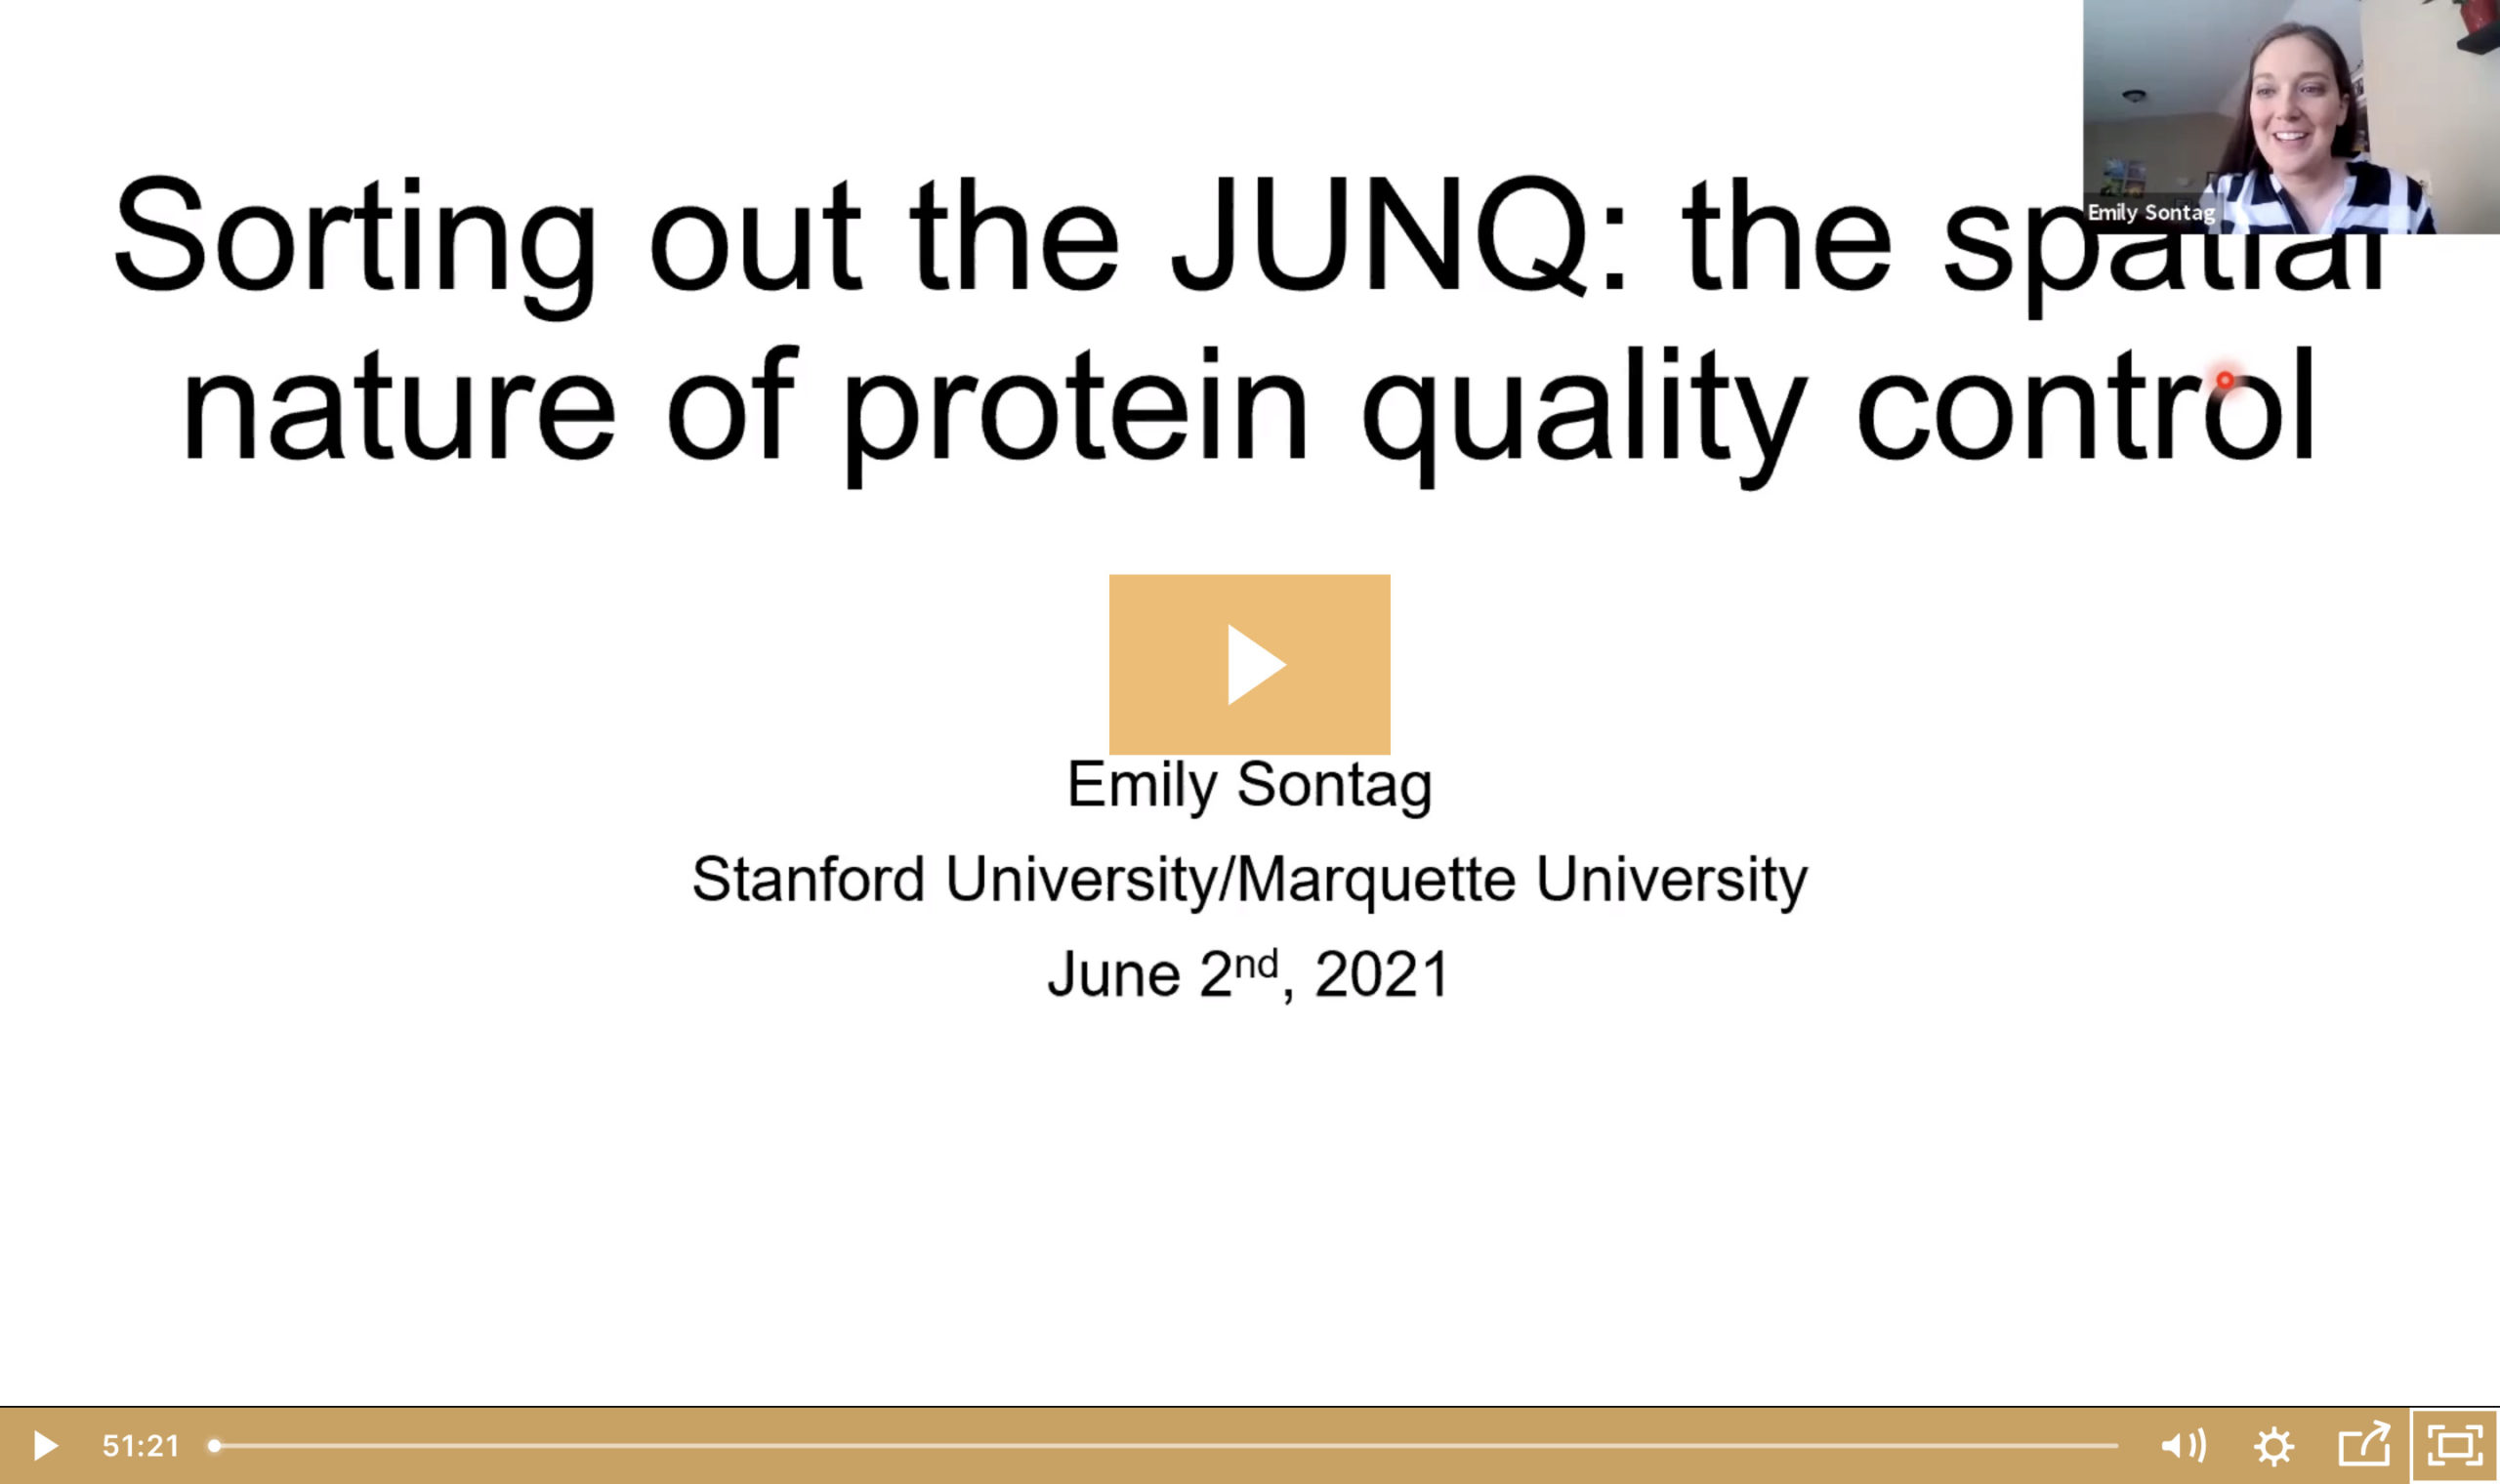 Emily Sontag on Sorting out the JUNQ: the Spatial Nature of Protein Quality Control